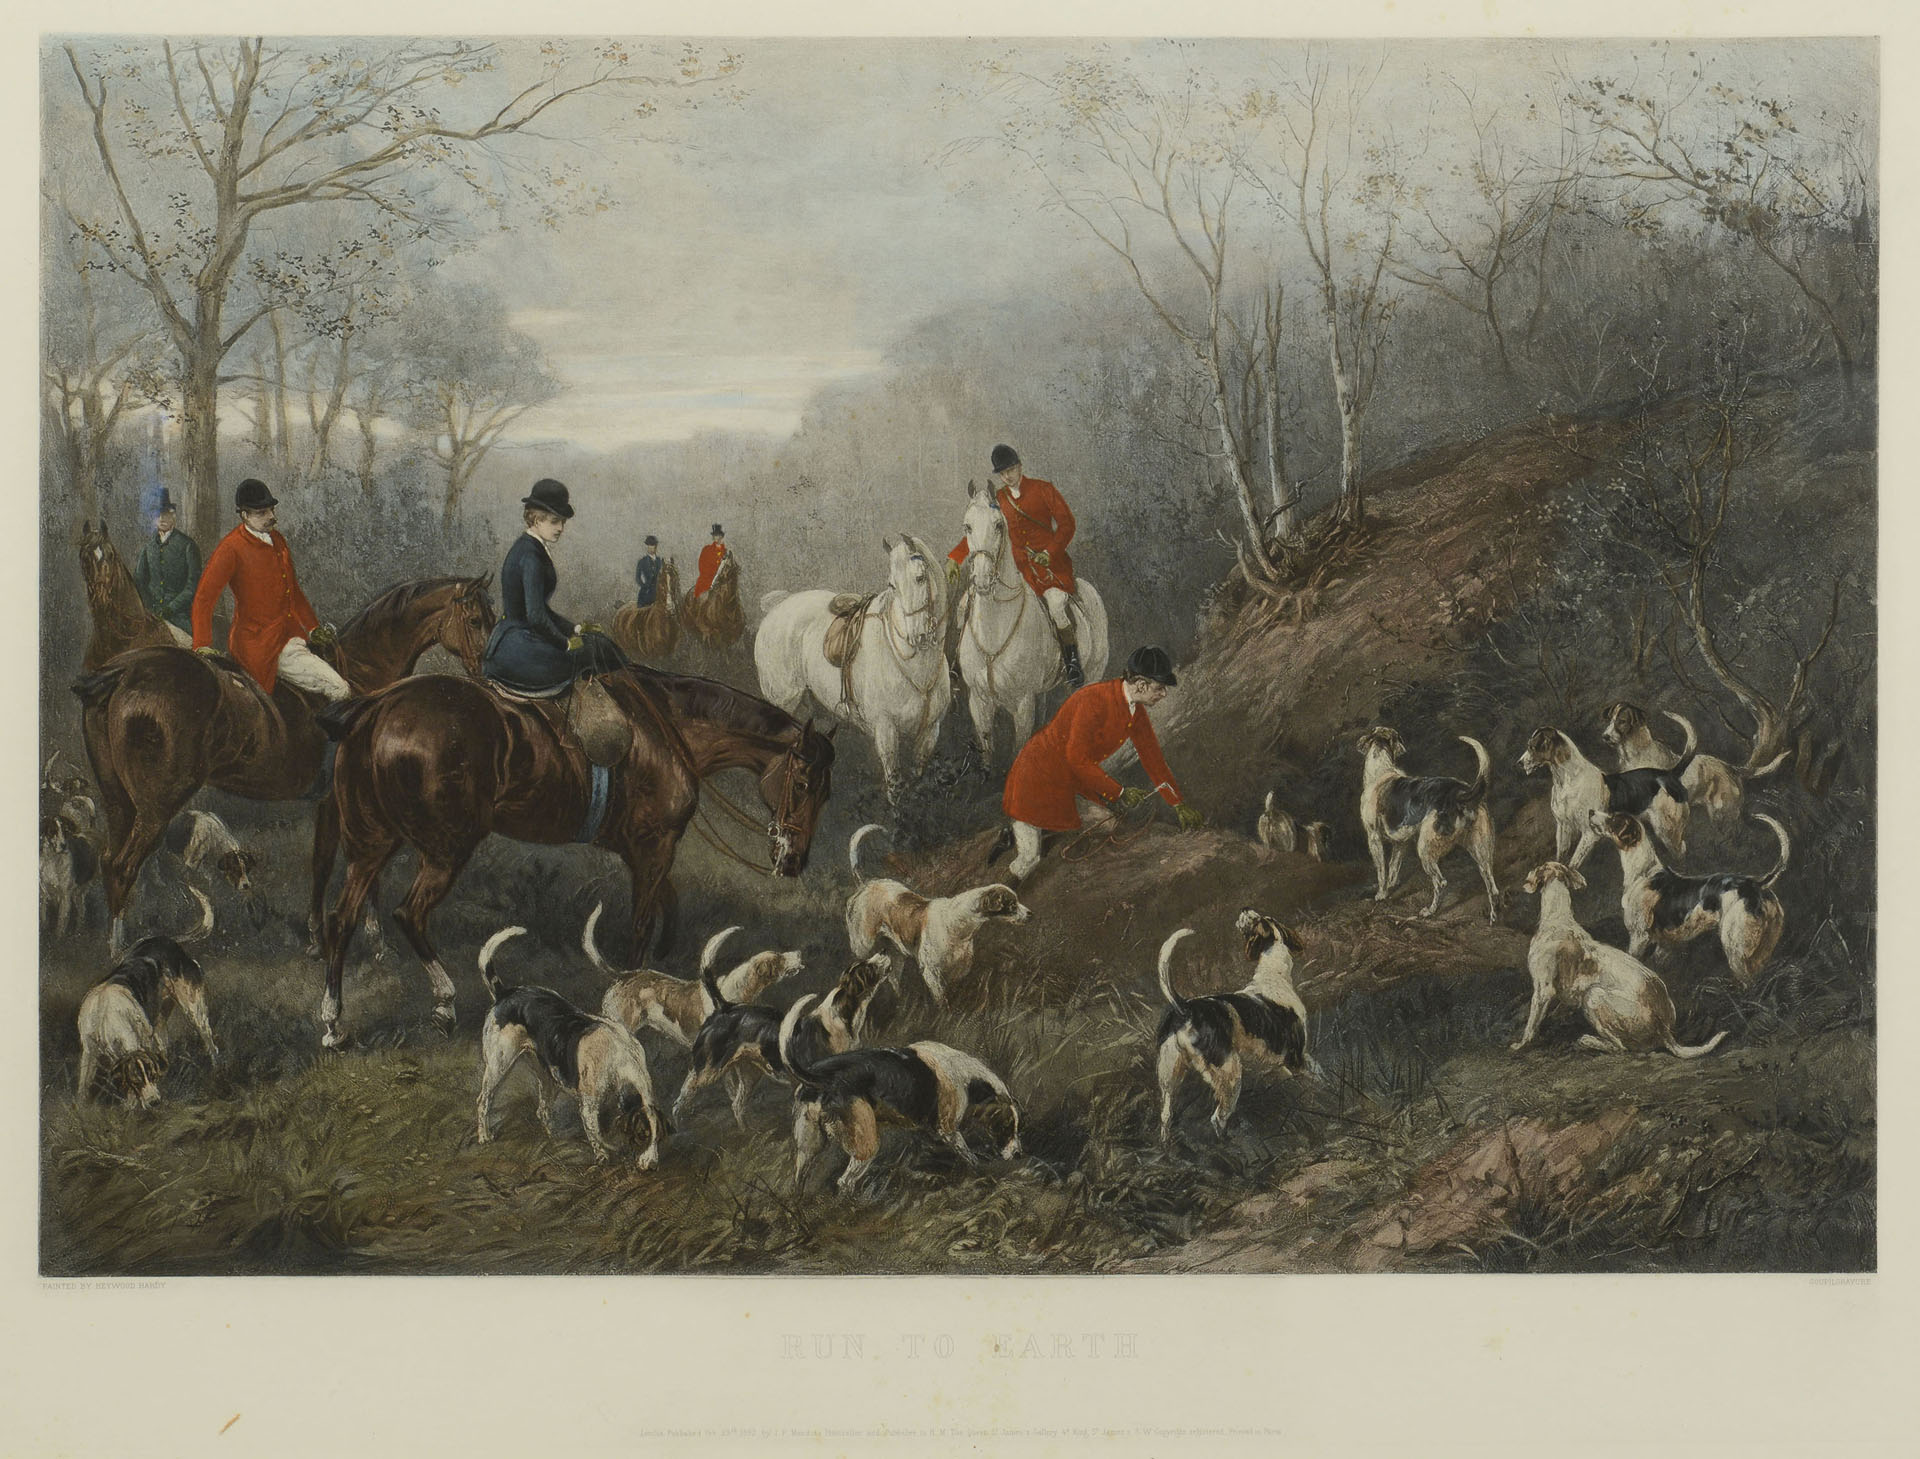 Lot 701 Pair Of English Hunting Prints 19th C